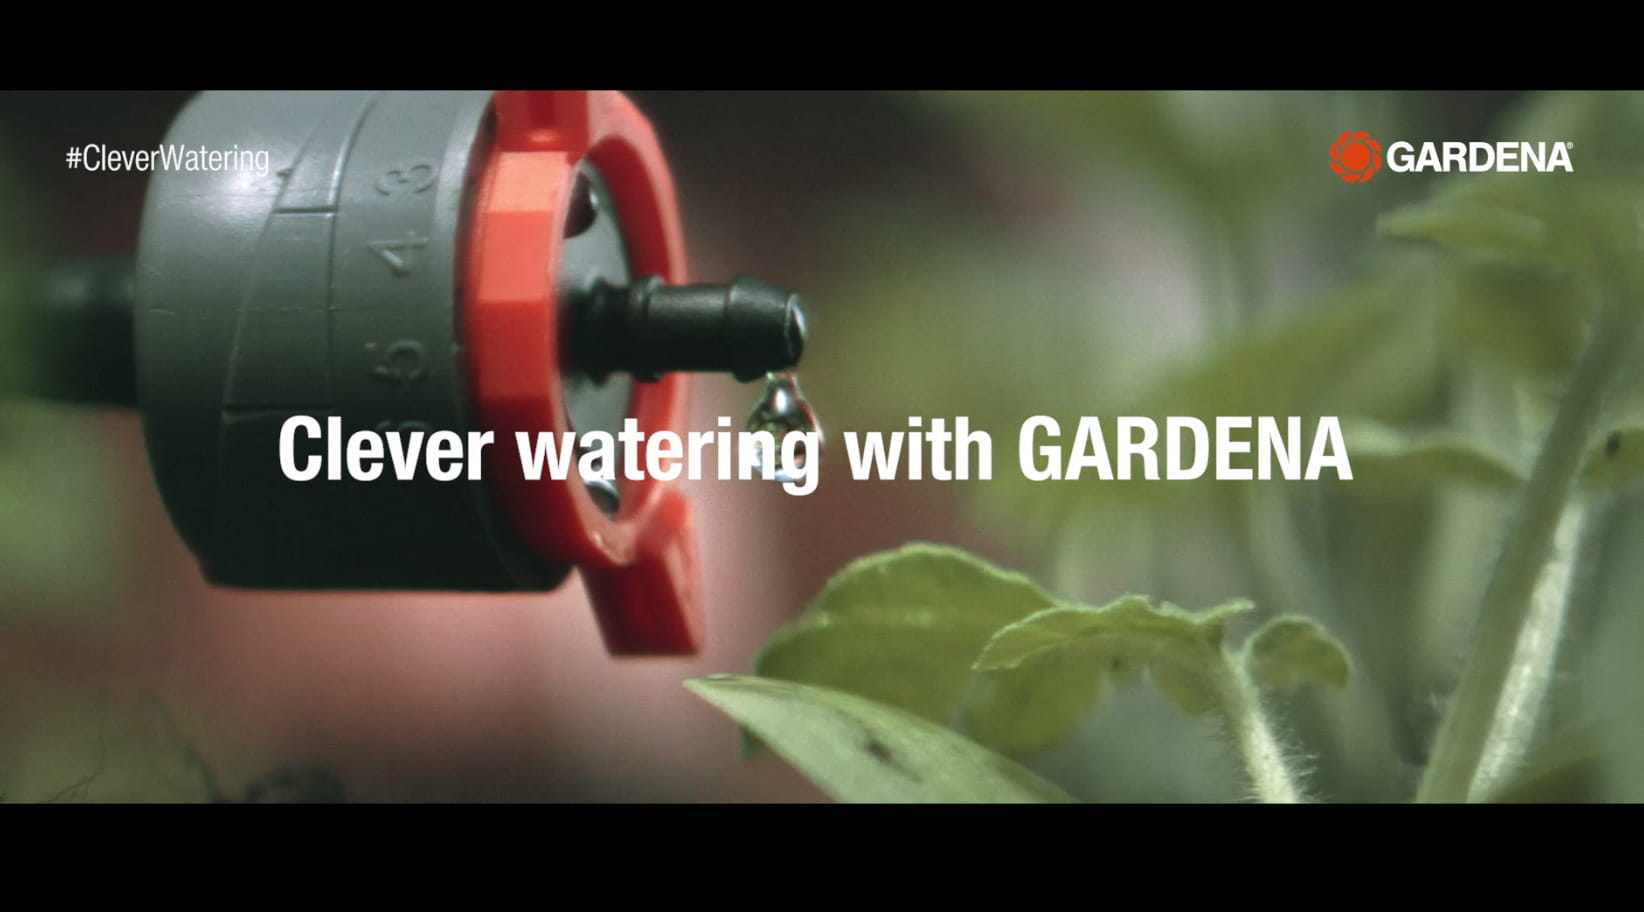 Clever Watering with GARDENA